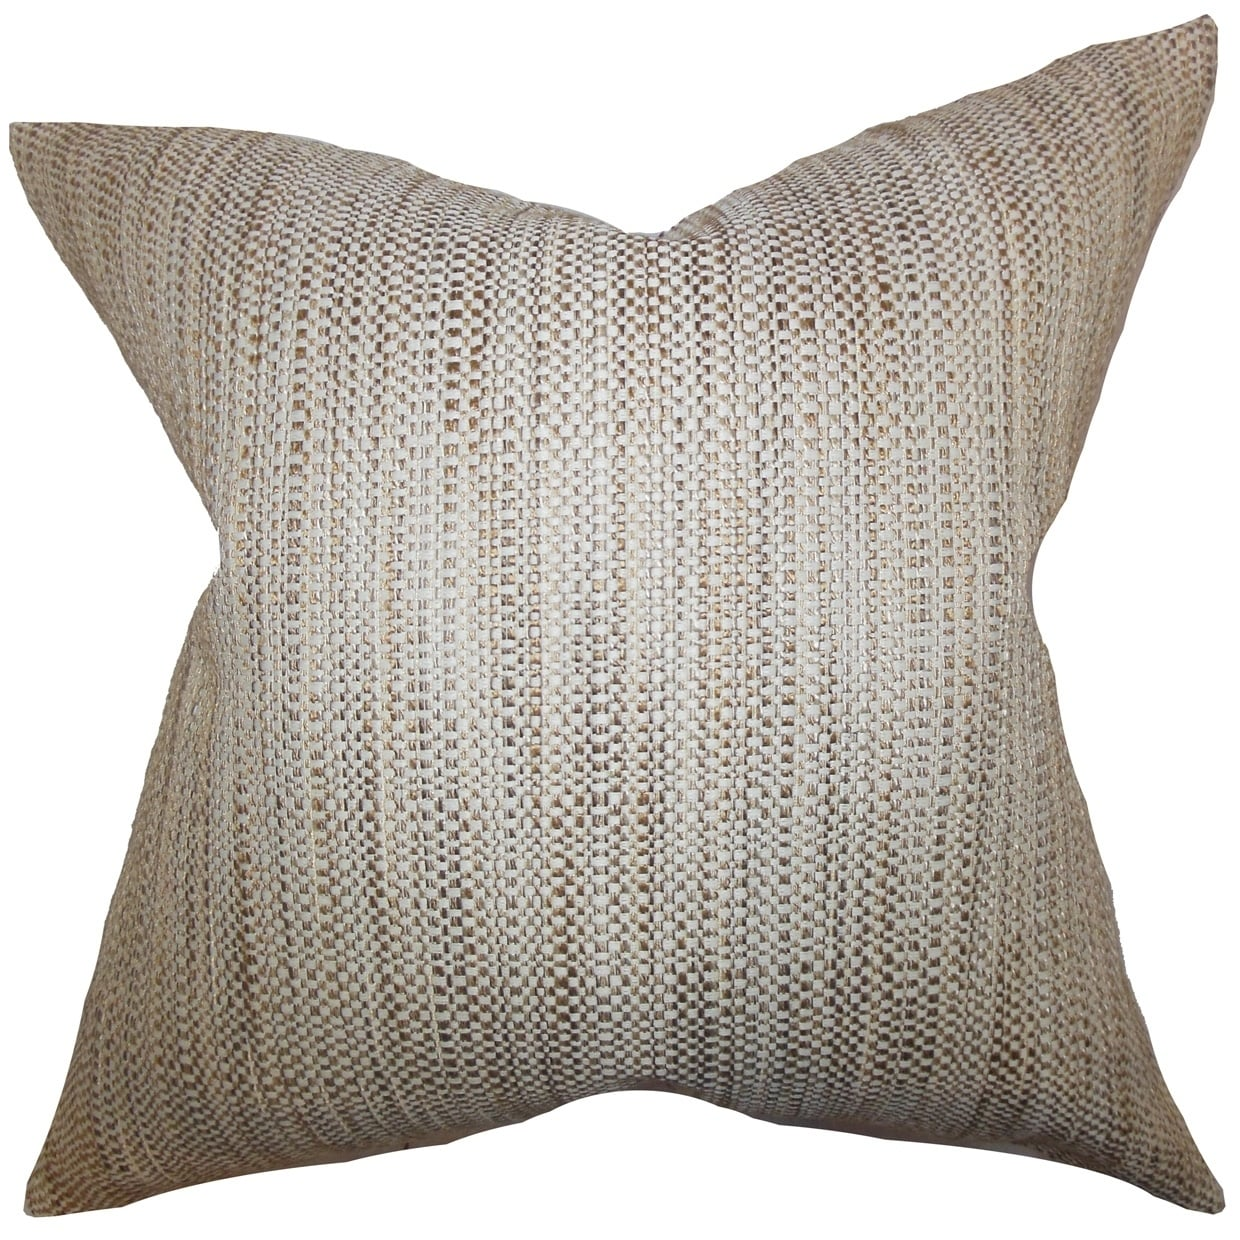 neutral pillow bogota home pin woven stripe white handmade grey decorative pillows and wool living azulina throw